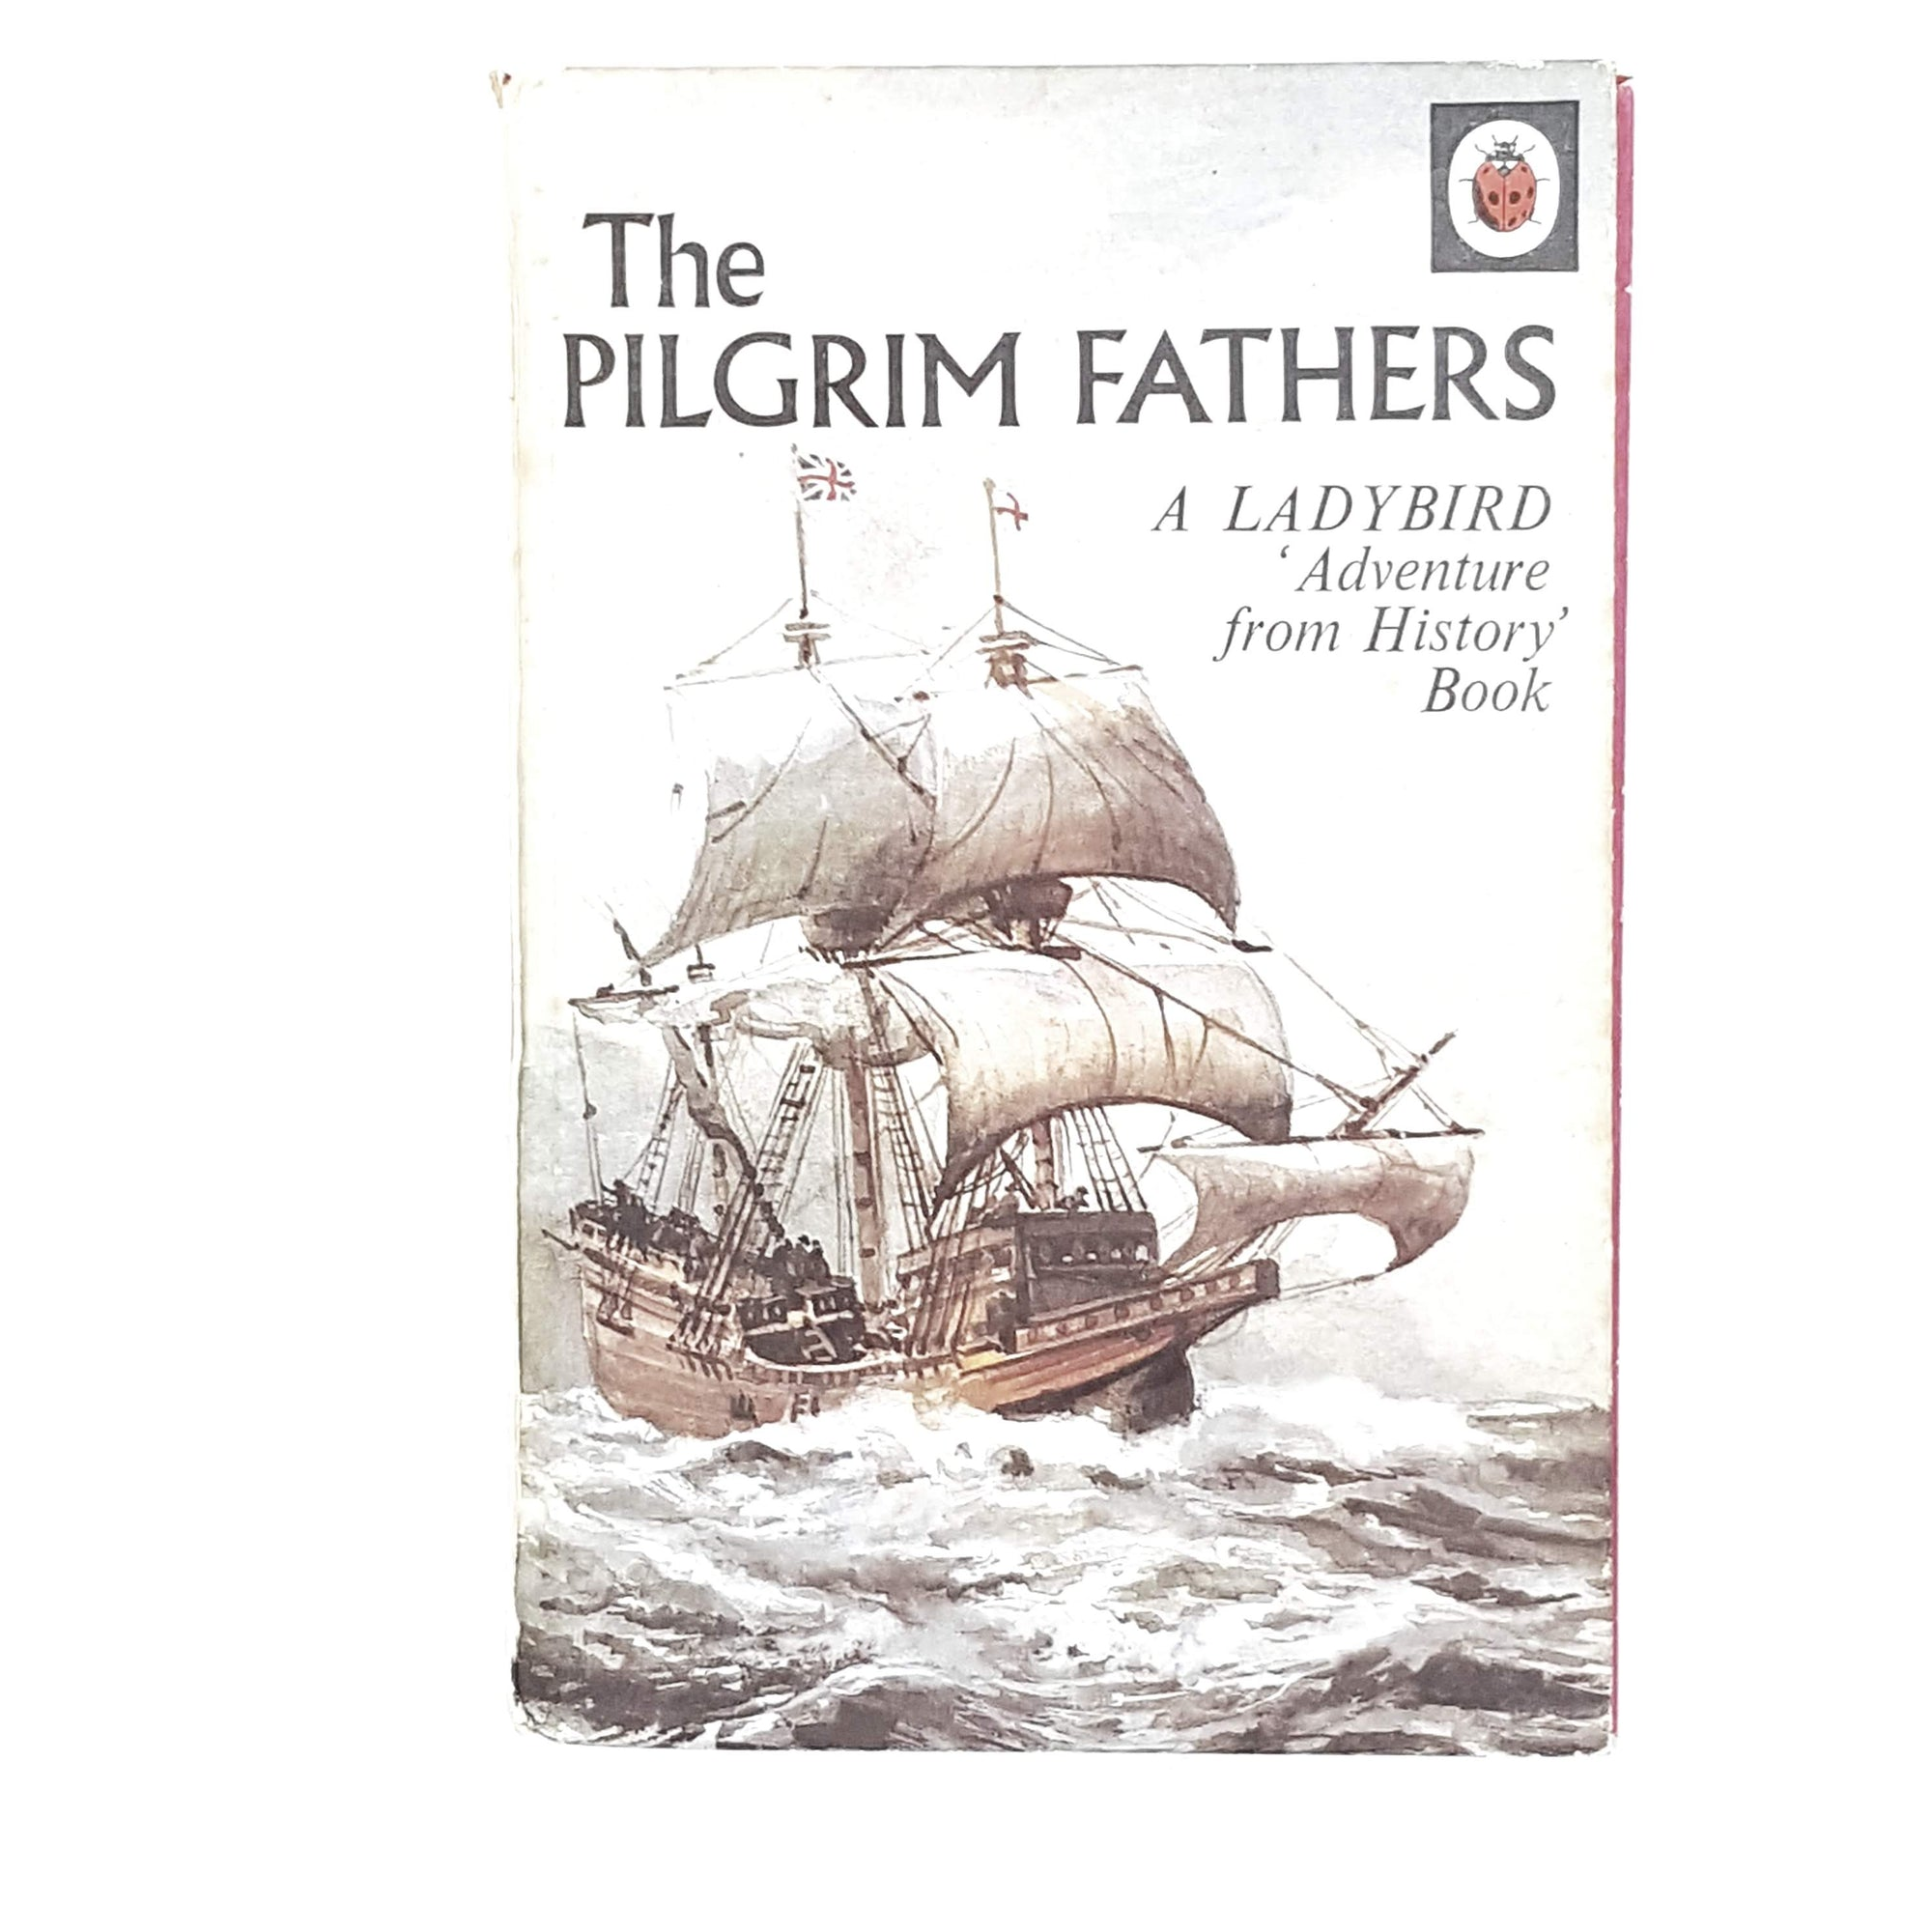 ladybird-history-the-pilgrim-fathers-1972-vintage-kindergarten-books-online-bookstore-country-house-library